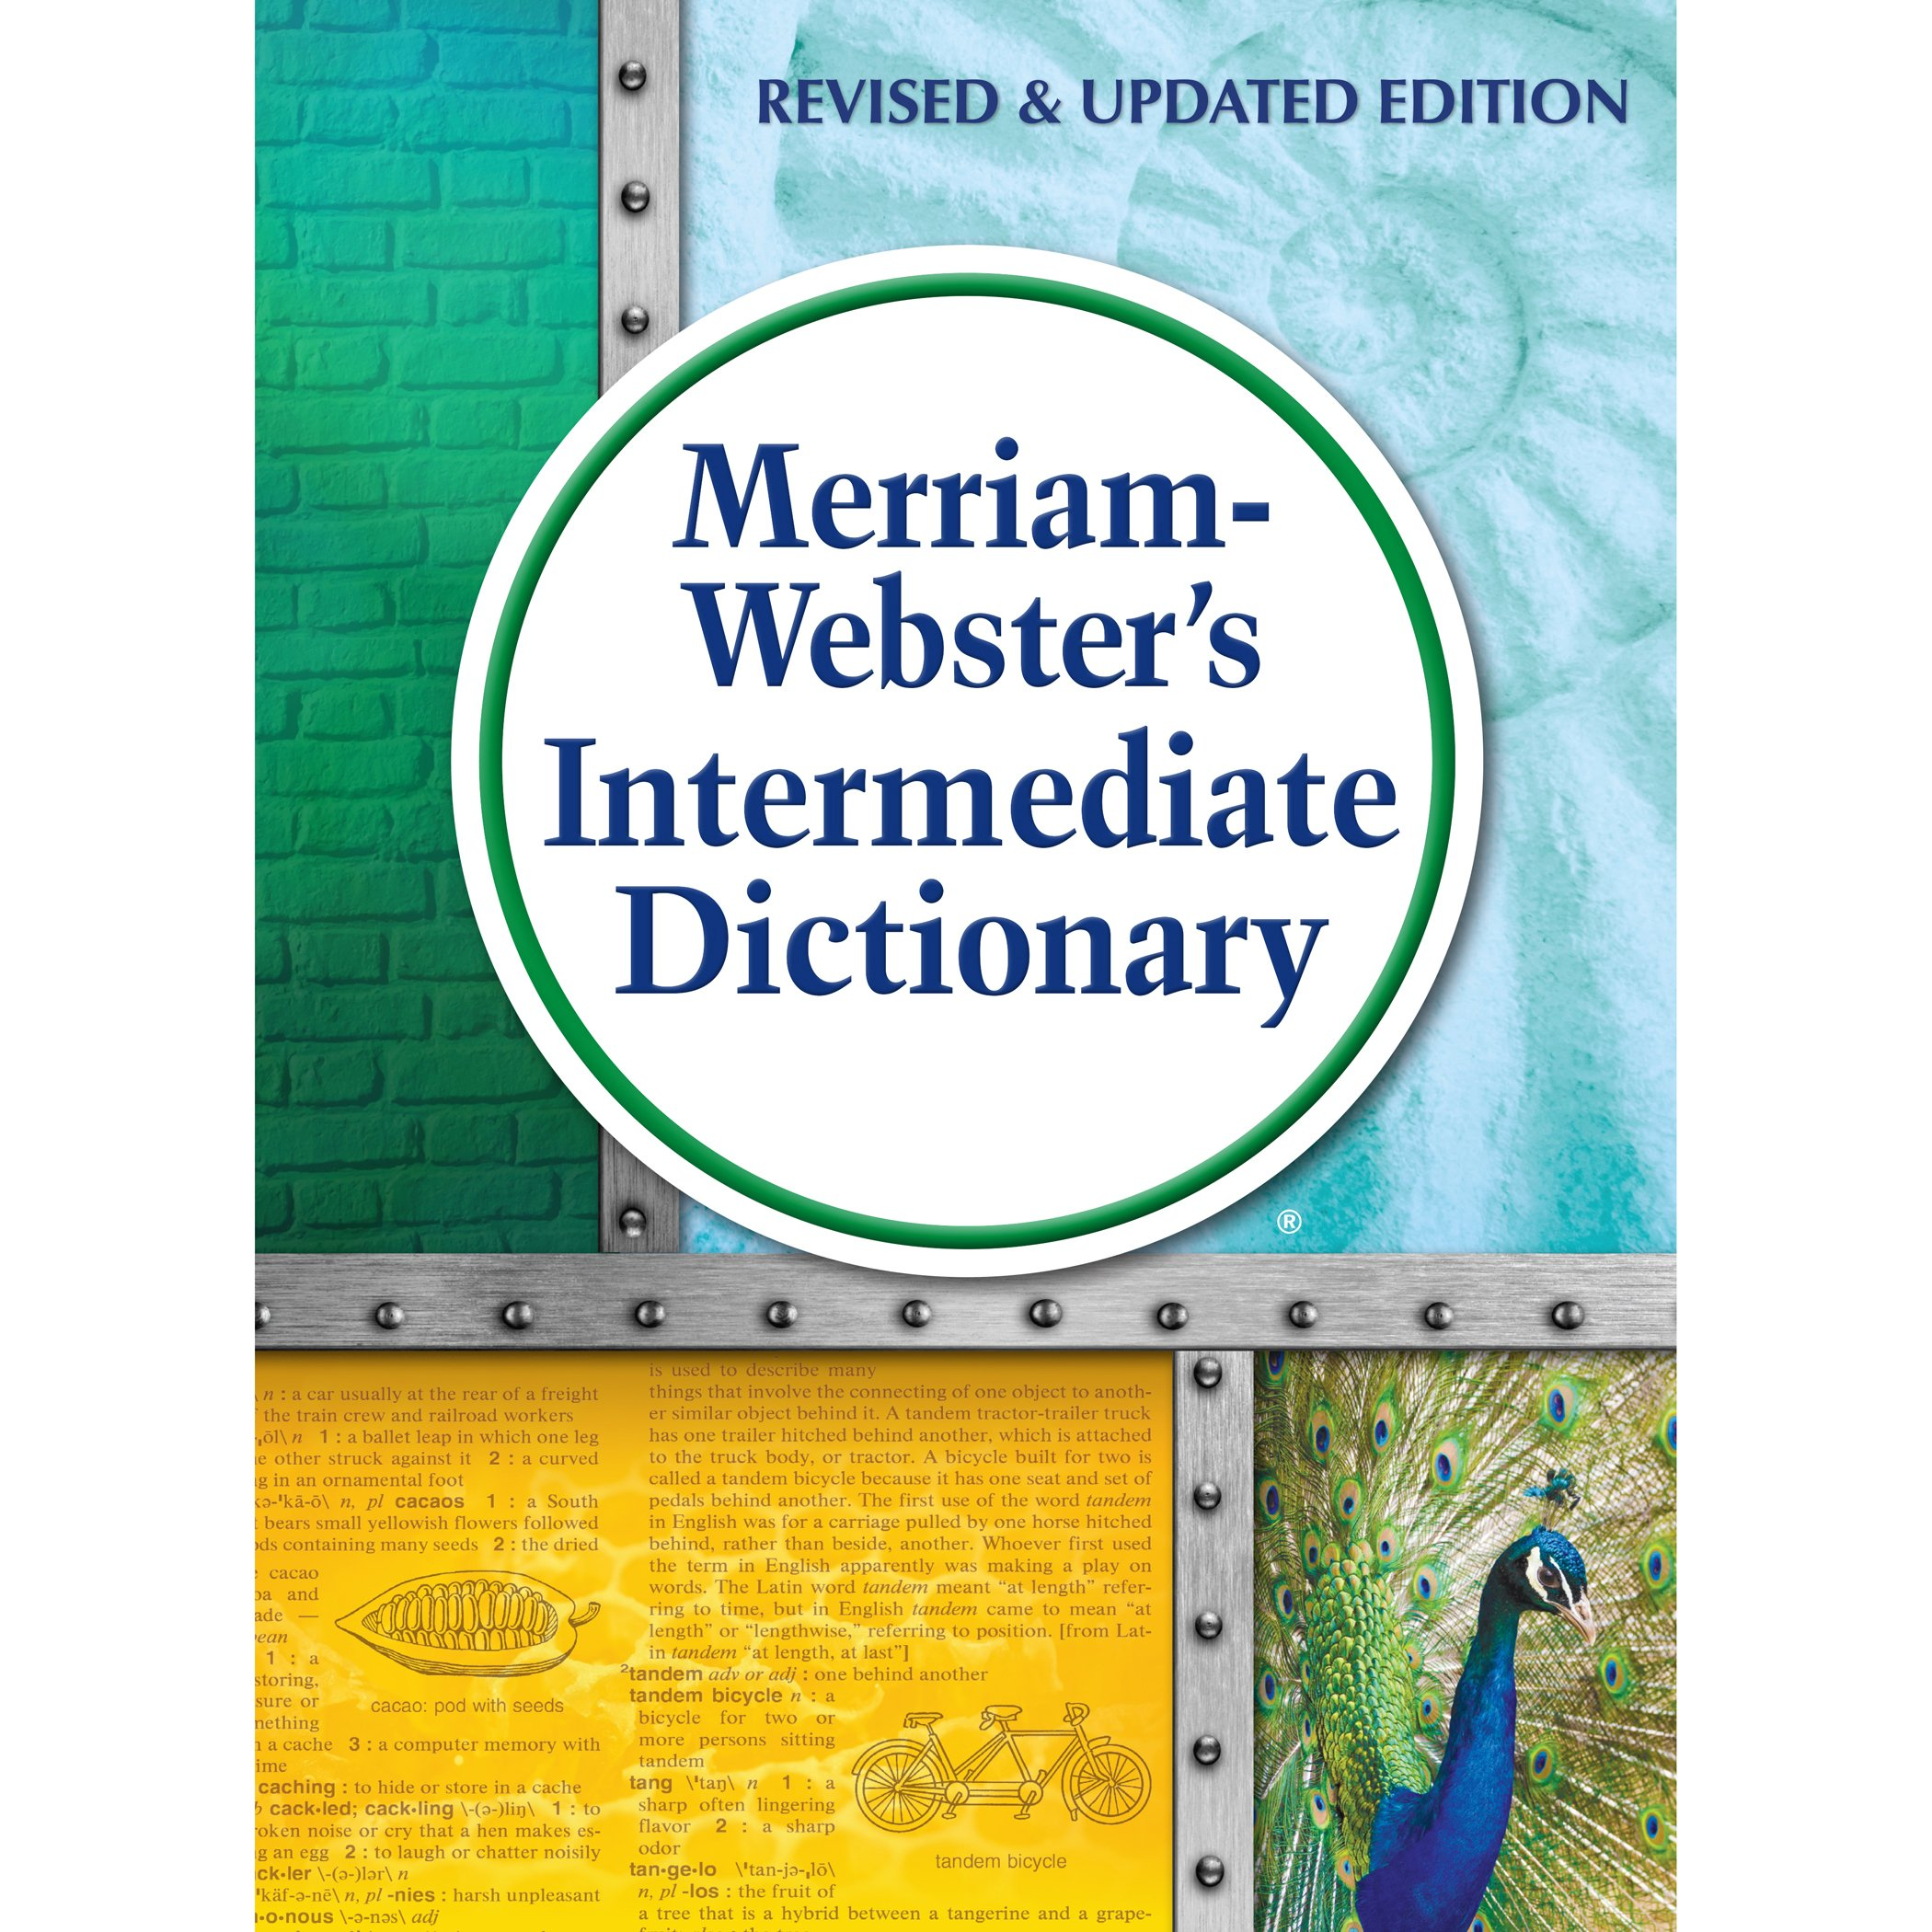 Merriam-Webster's Intermediate Dictionary, Newest Edition, 2016 Copyright